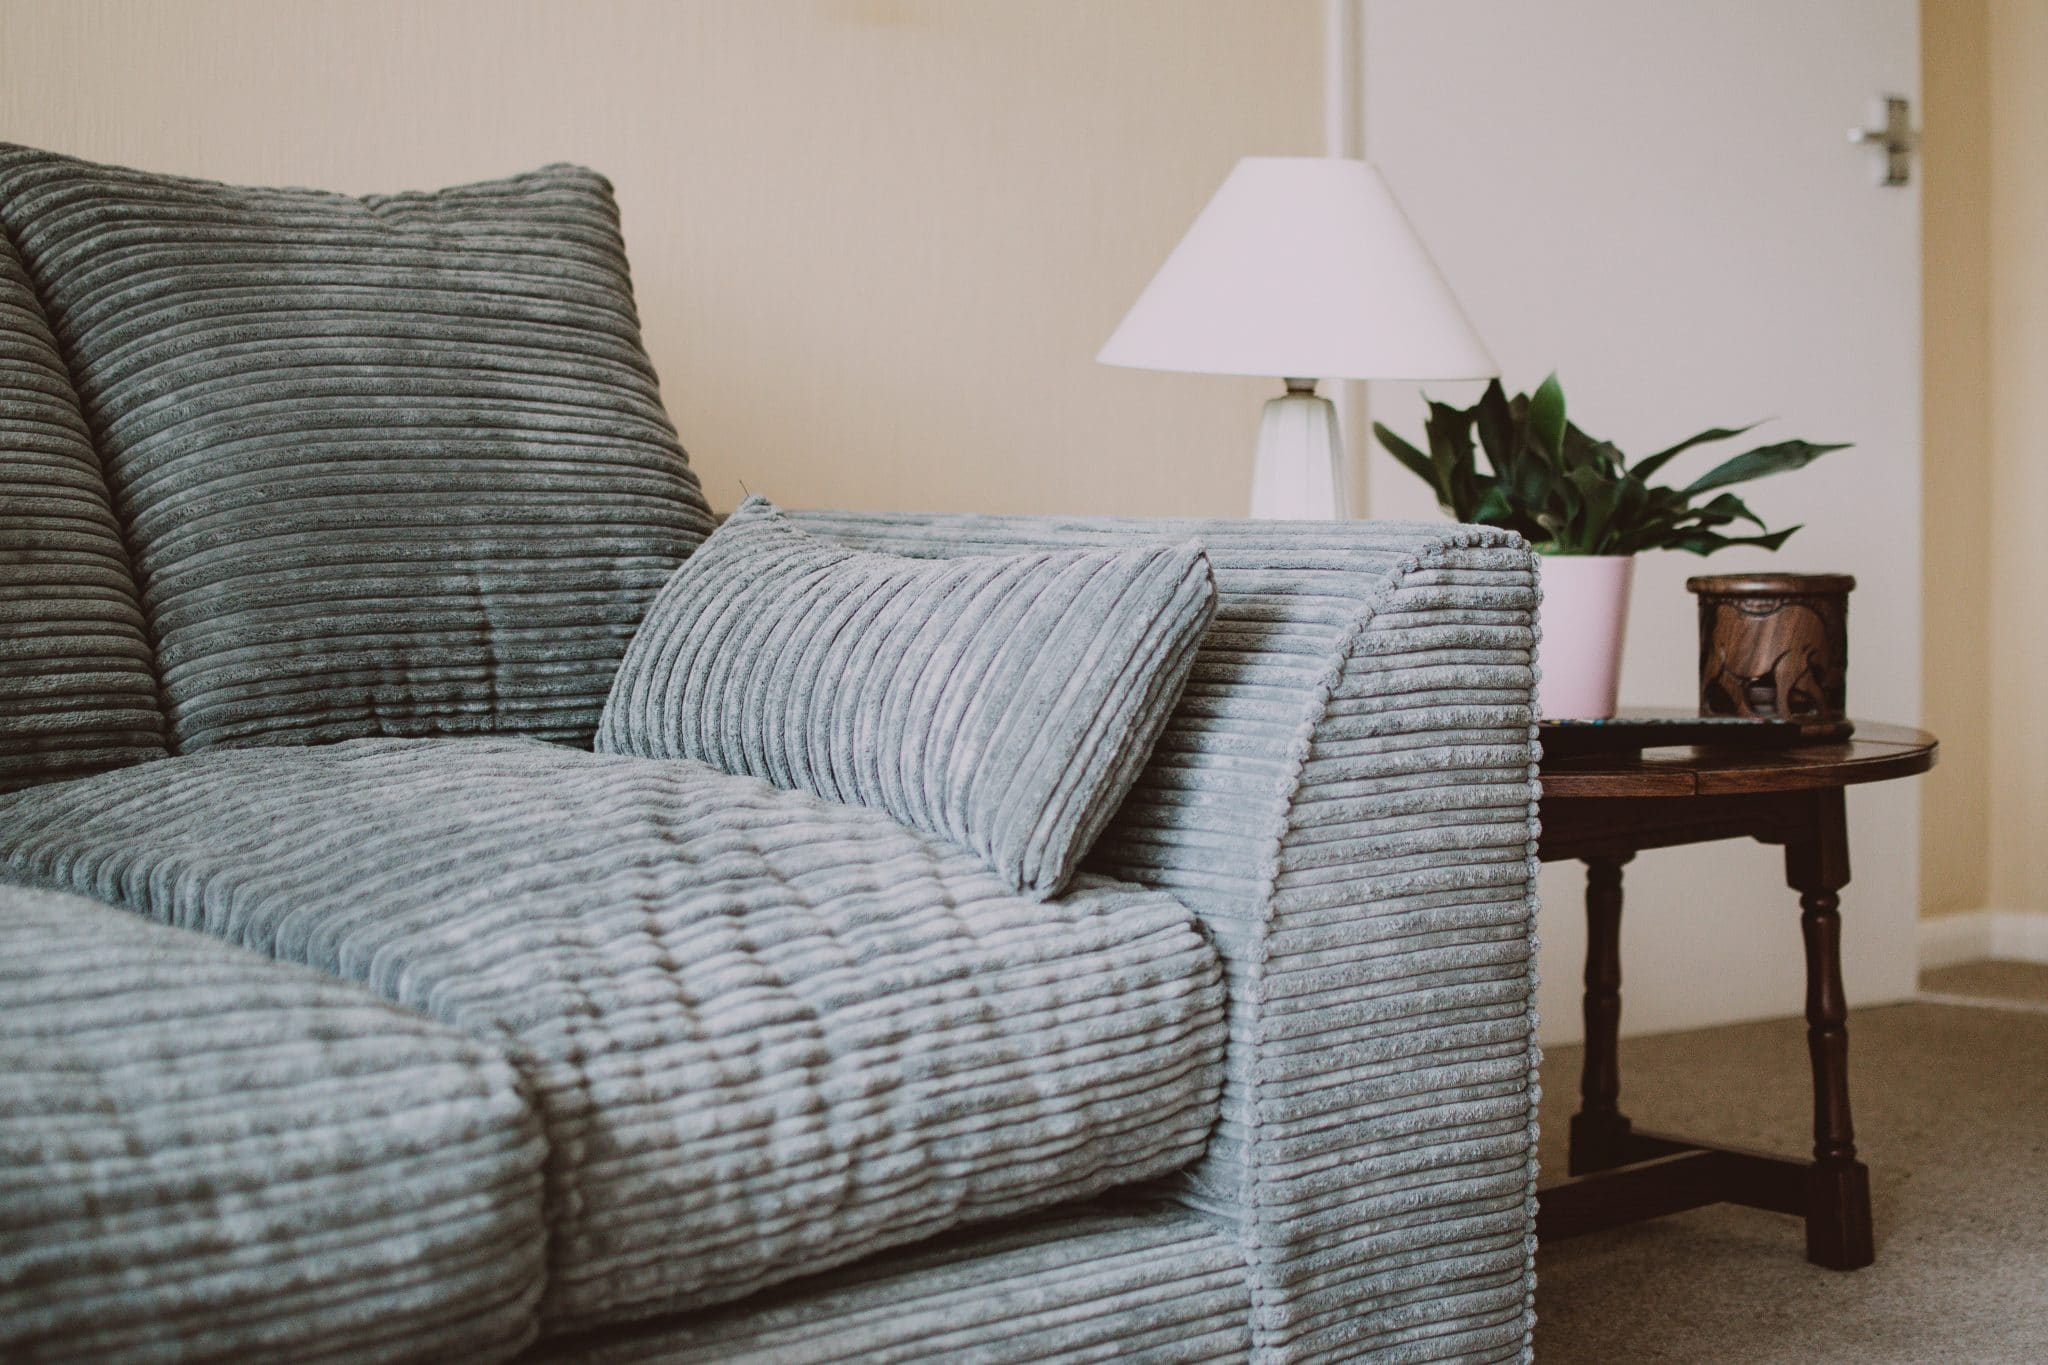 upholstery cleaning in kenosha, the dry guys, kenosha furniture cleaning